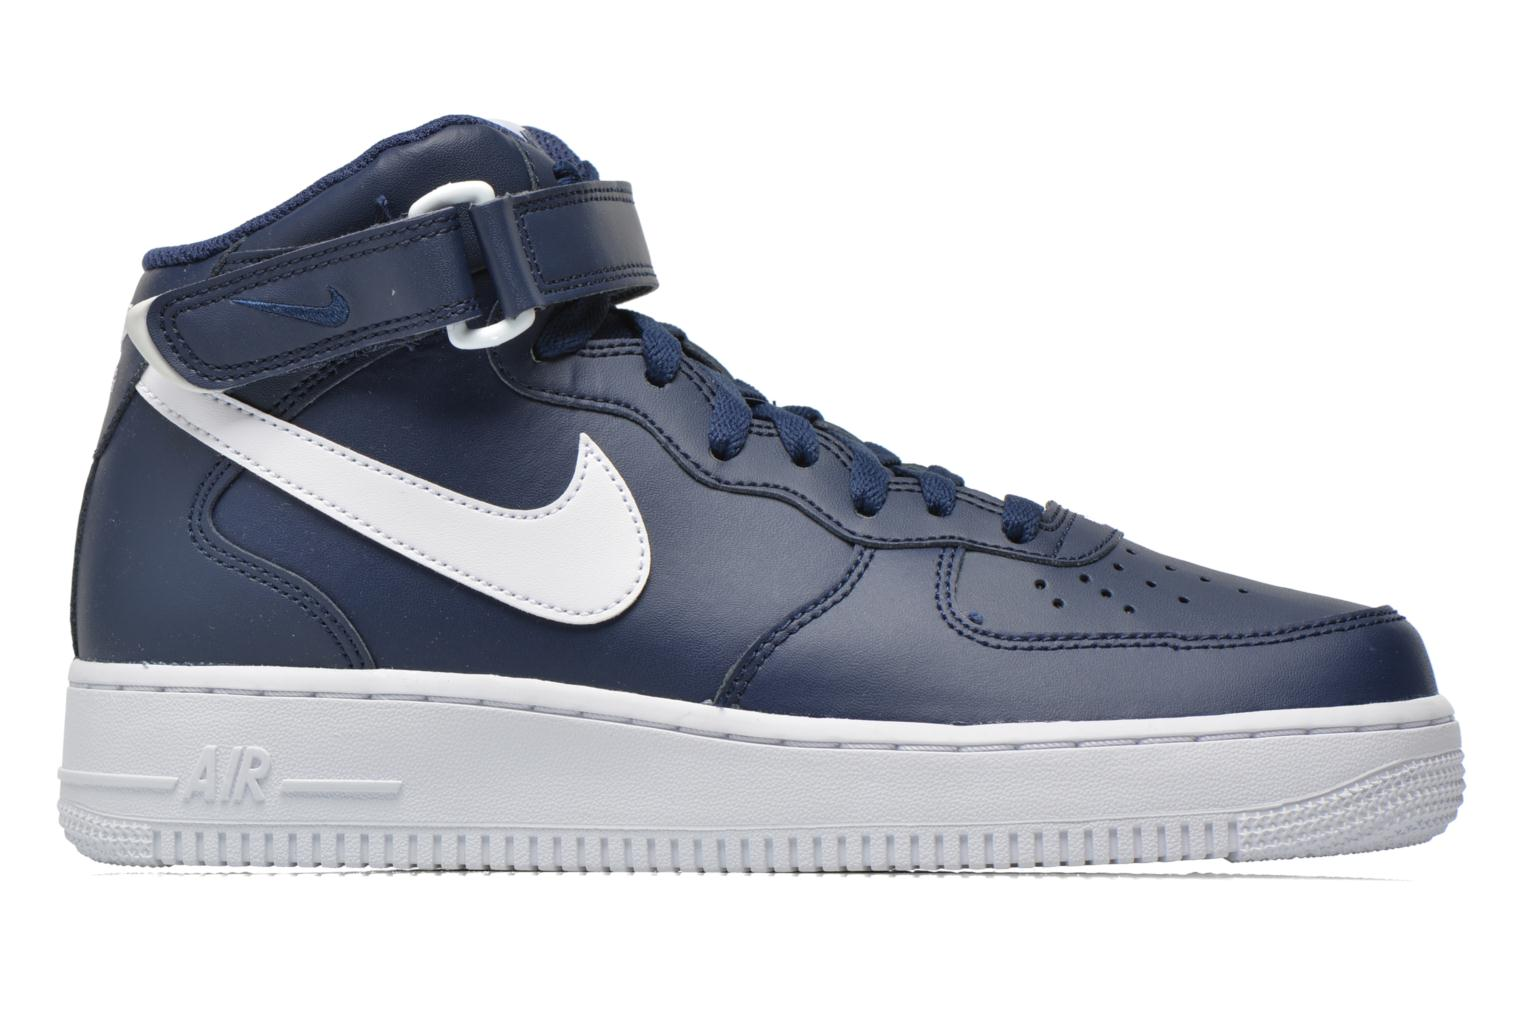 Obsidian/Obsidian-White Nike Air Force 1 Mid (Bleu)